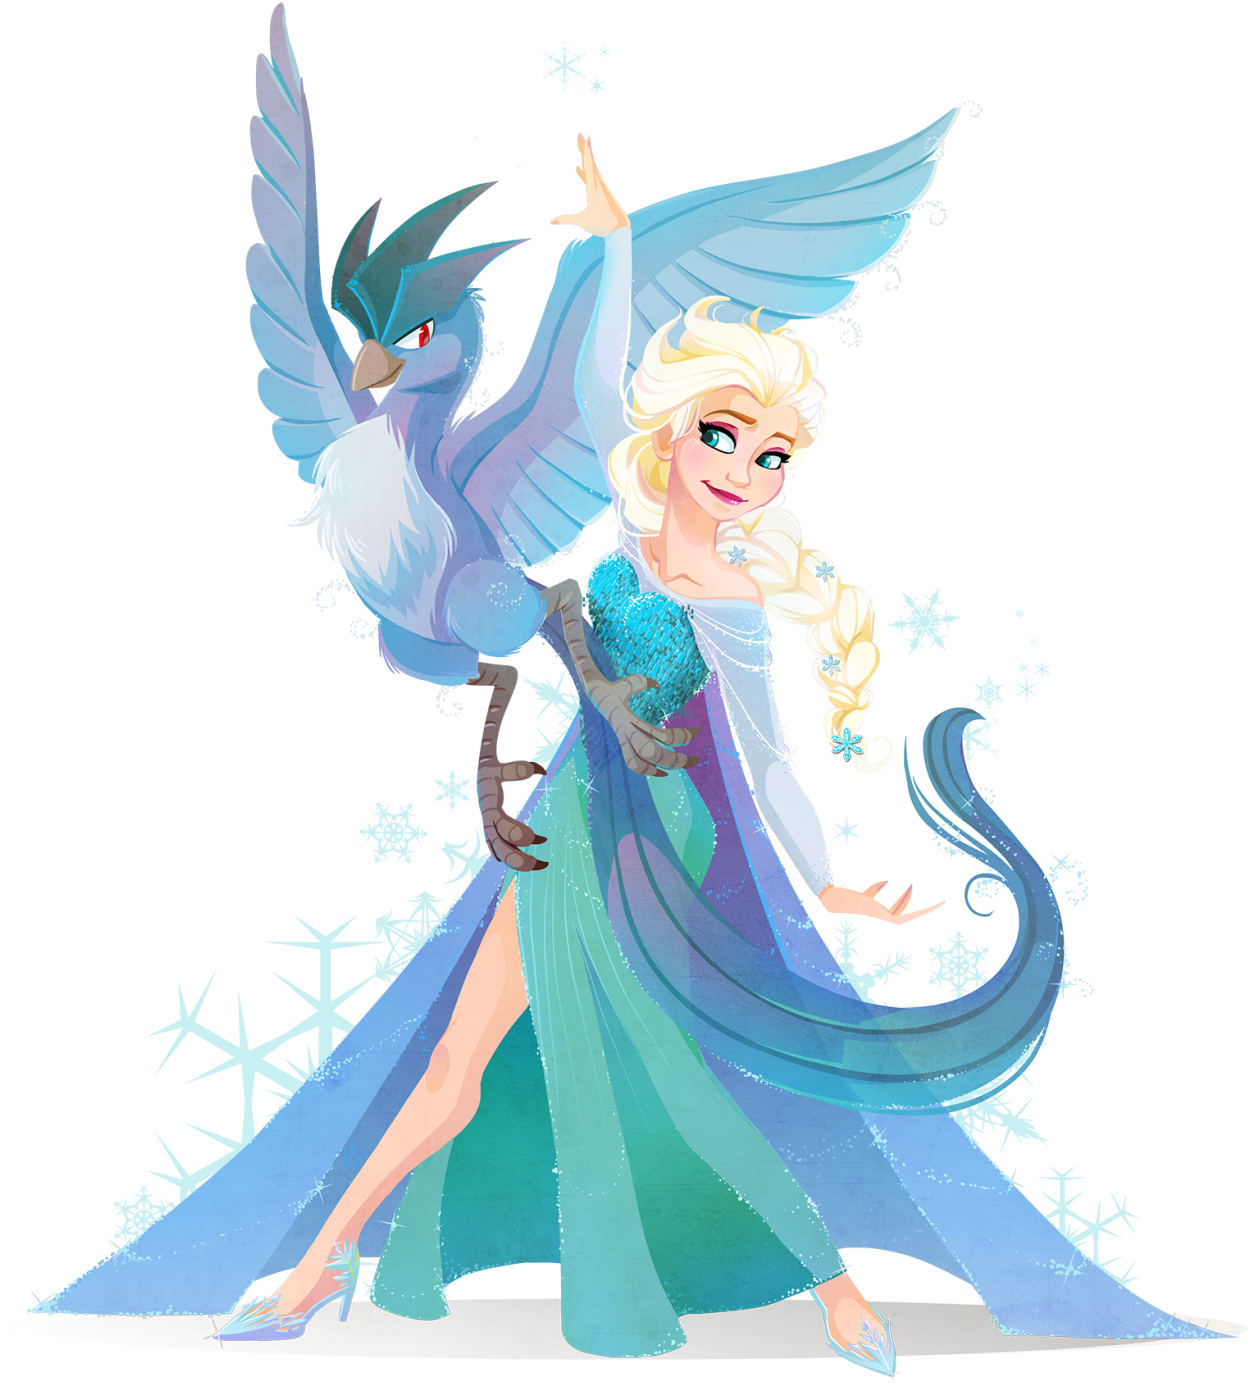 Download Hd Elsa And A Pokemon By Krista From Her Kuitsuku Sketch Disney Characters Meet Pokemon Transparent Png Image Nicepng Com